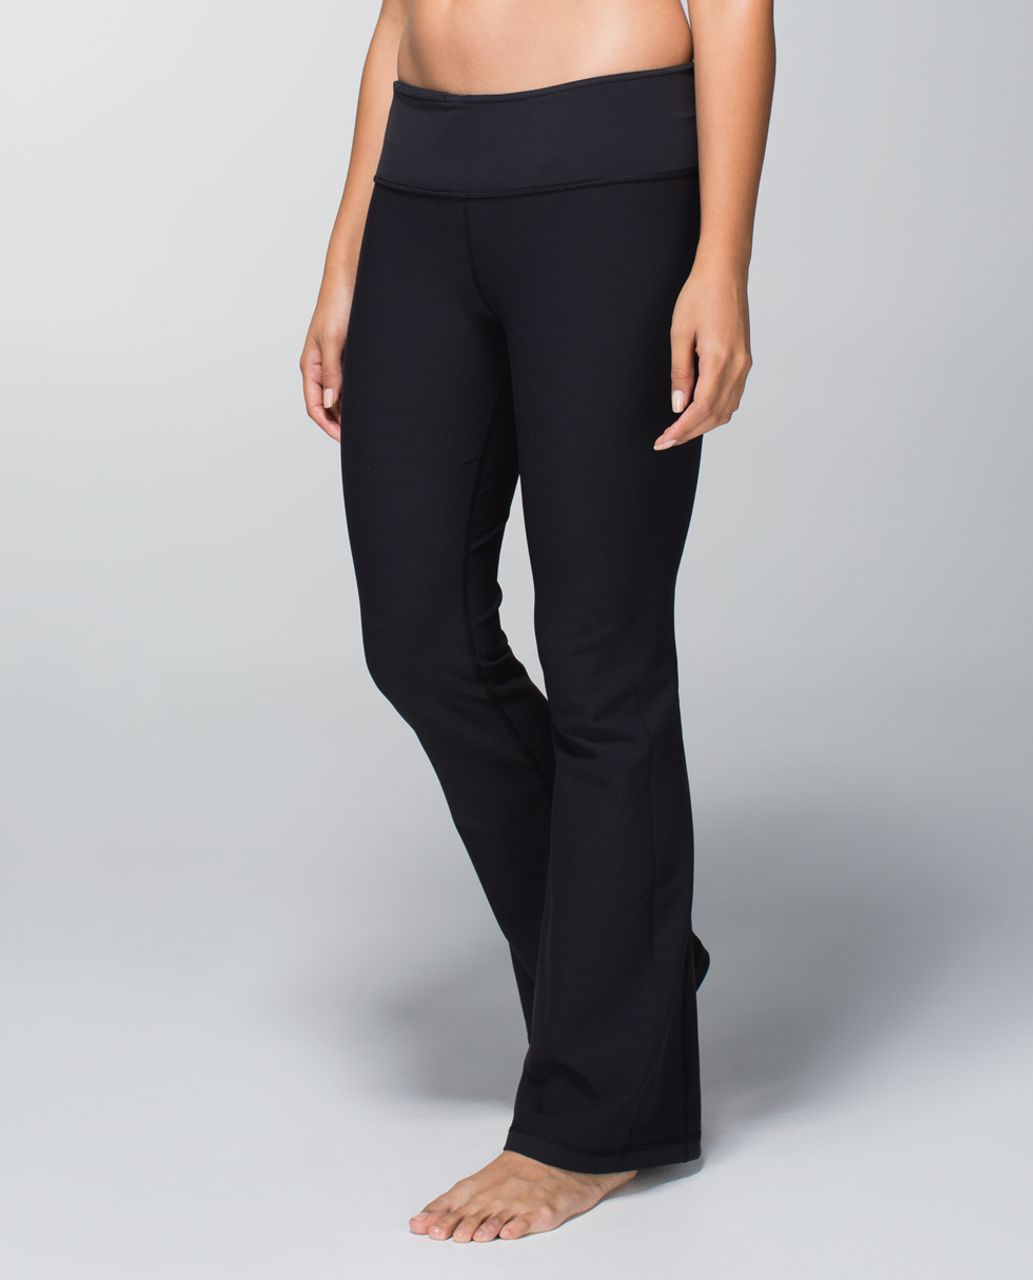 Lululemon Groove Pant *Full-On Luon (Regular) - Black / Fa14 Quilt 9